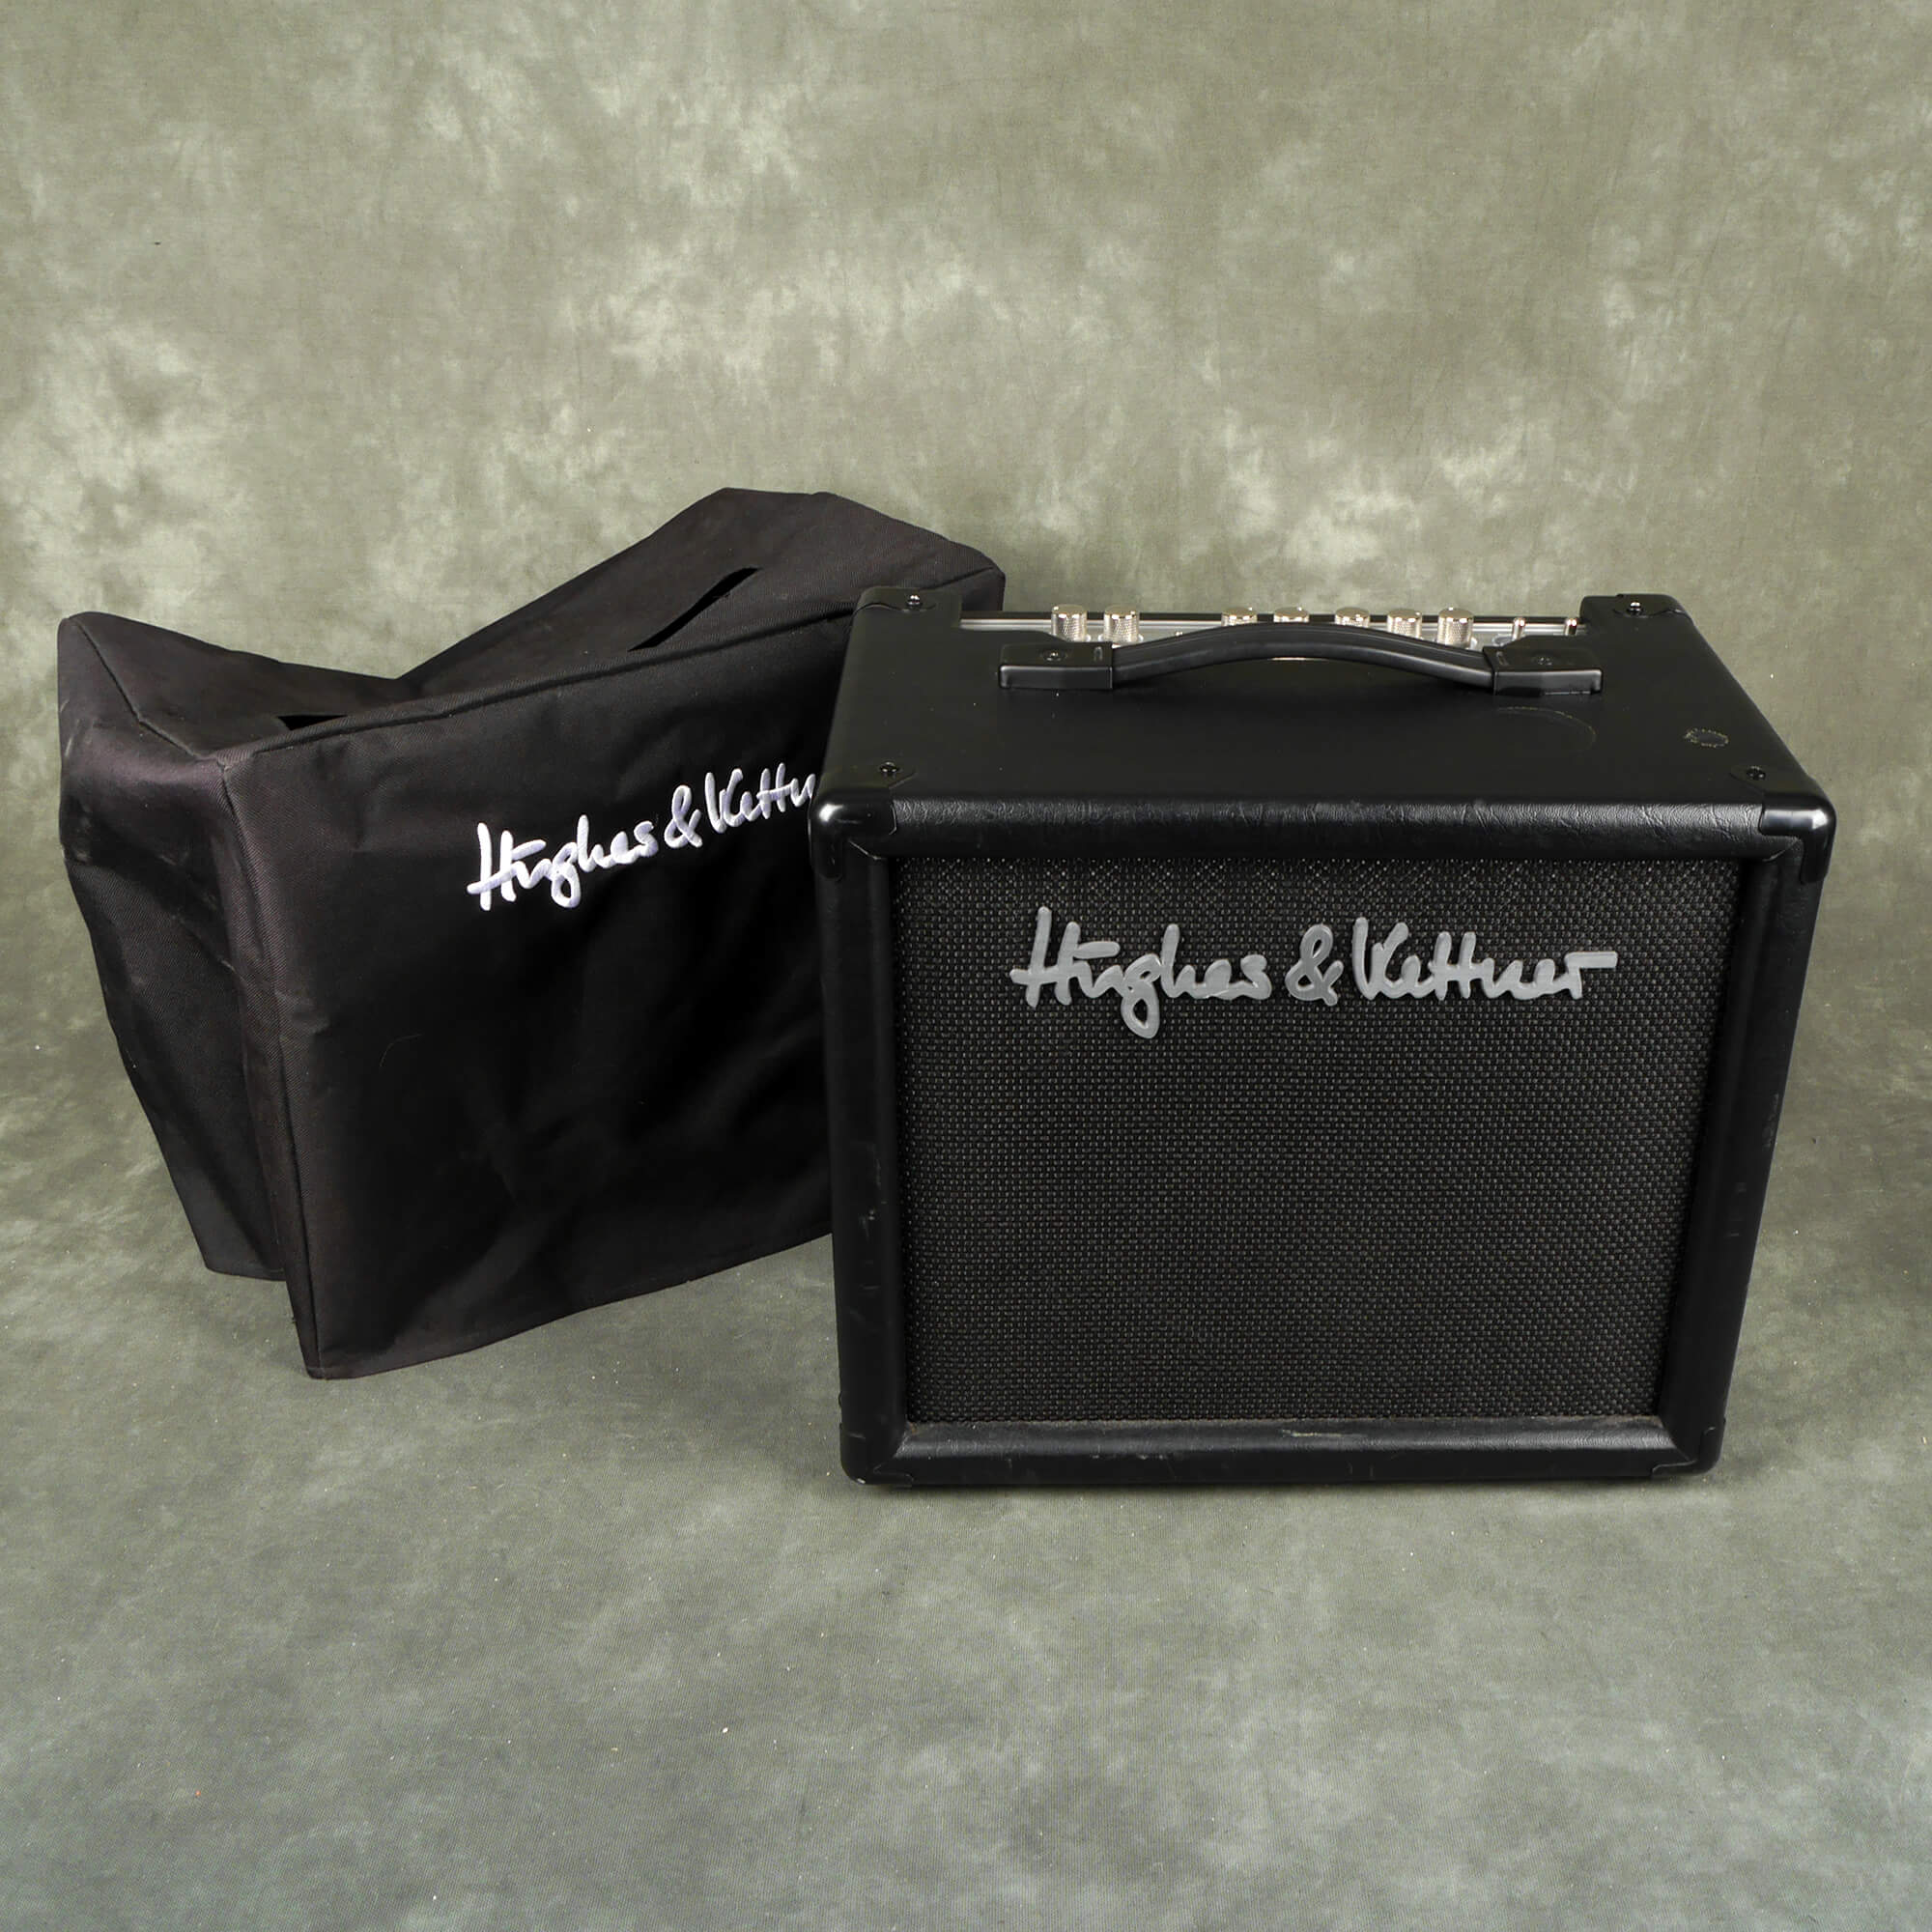 Hughes and Kettner 18 Guitar Combo Amplifier w/Cover - 2nd Hand